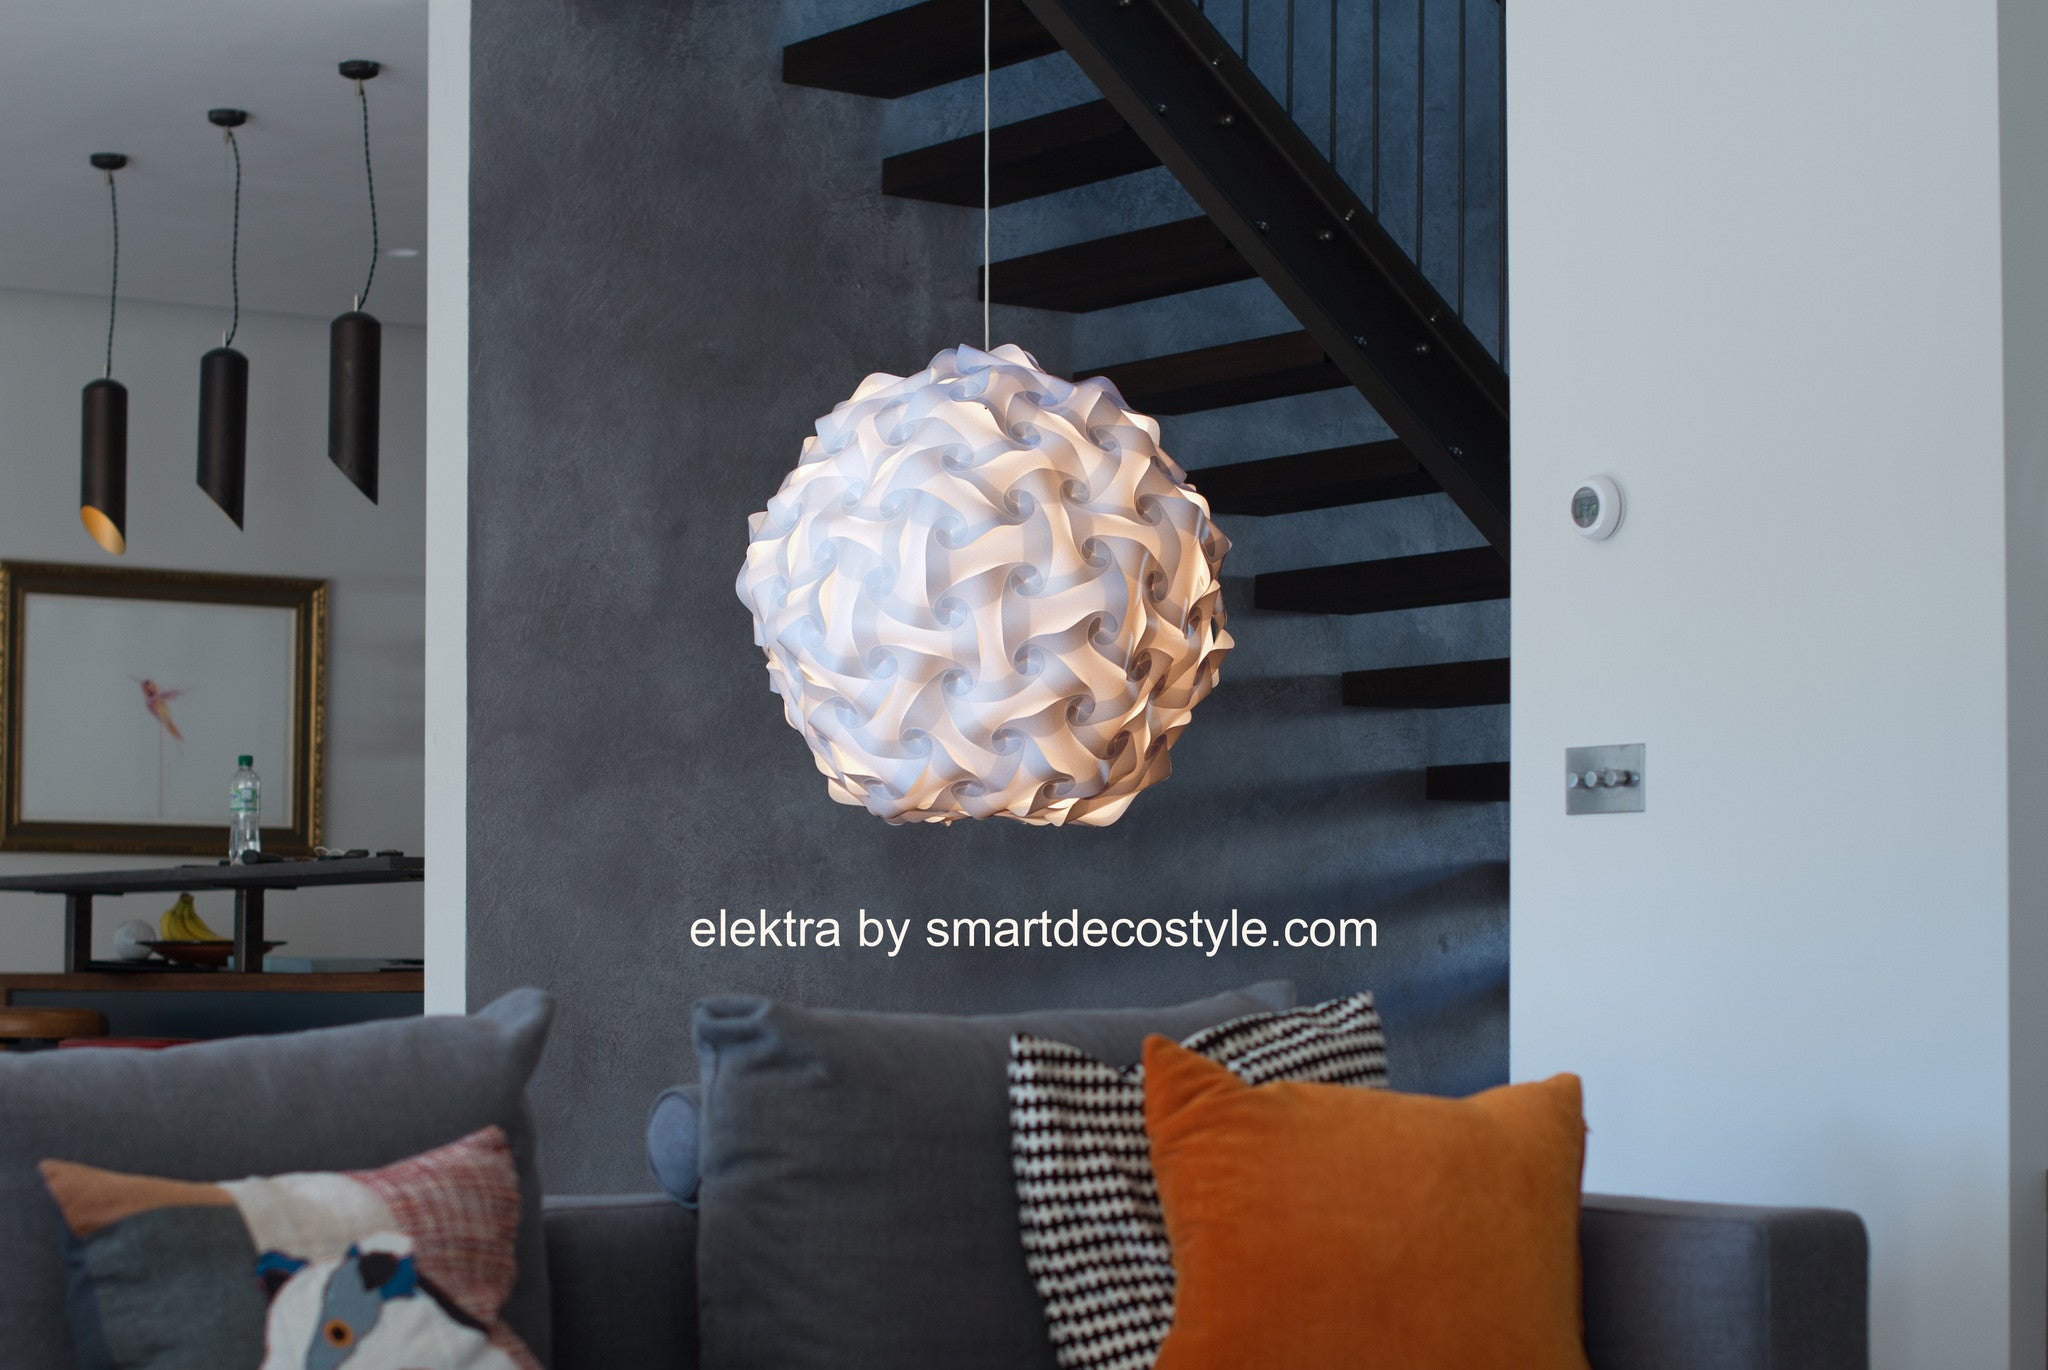 Smarty Lamps Elektra Ceiling Light Shade  Smart Deco Homeware Lighting and Art by Jacqueline hammond